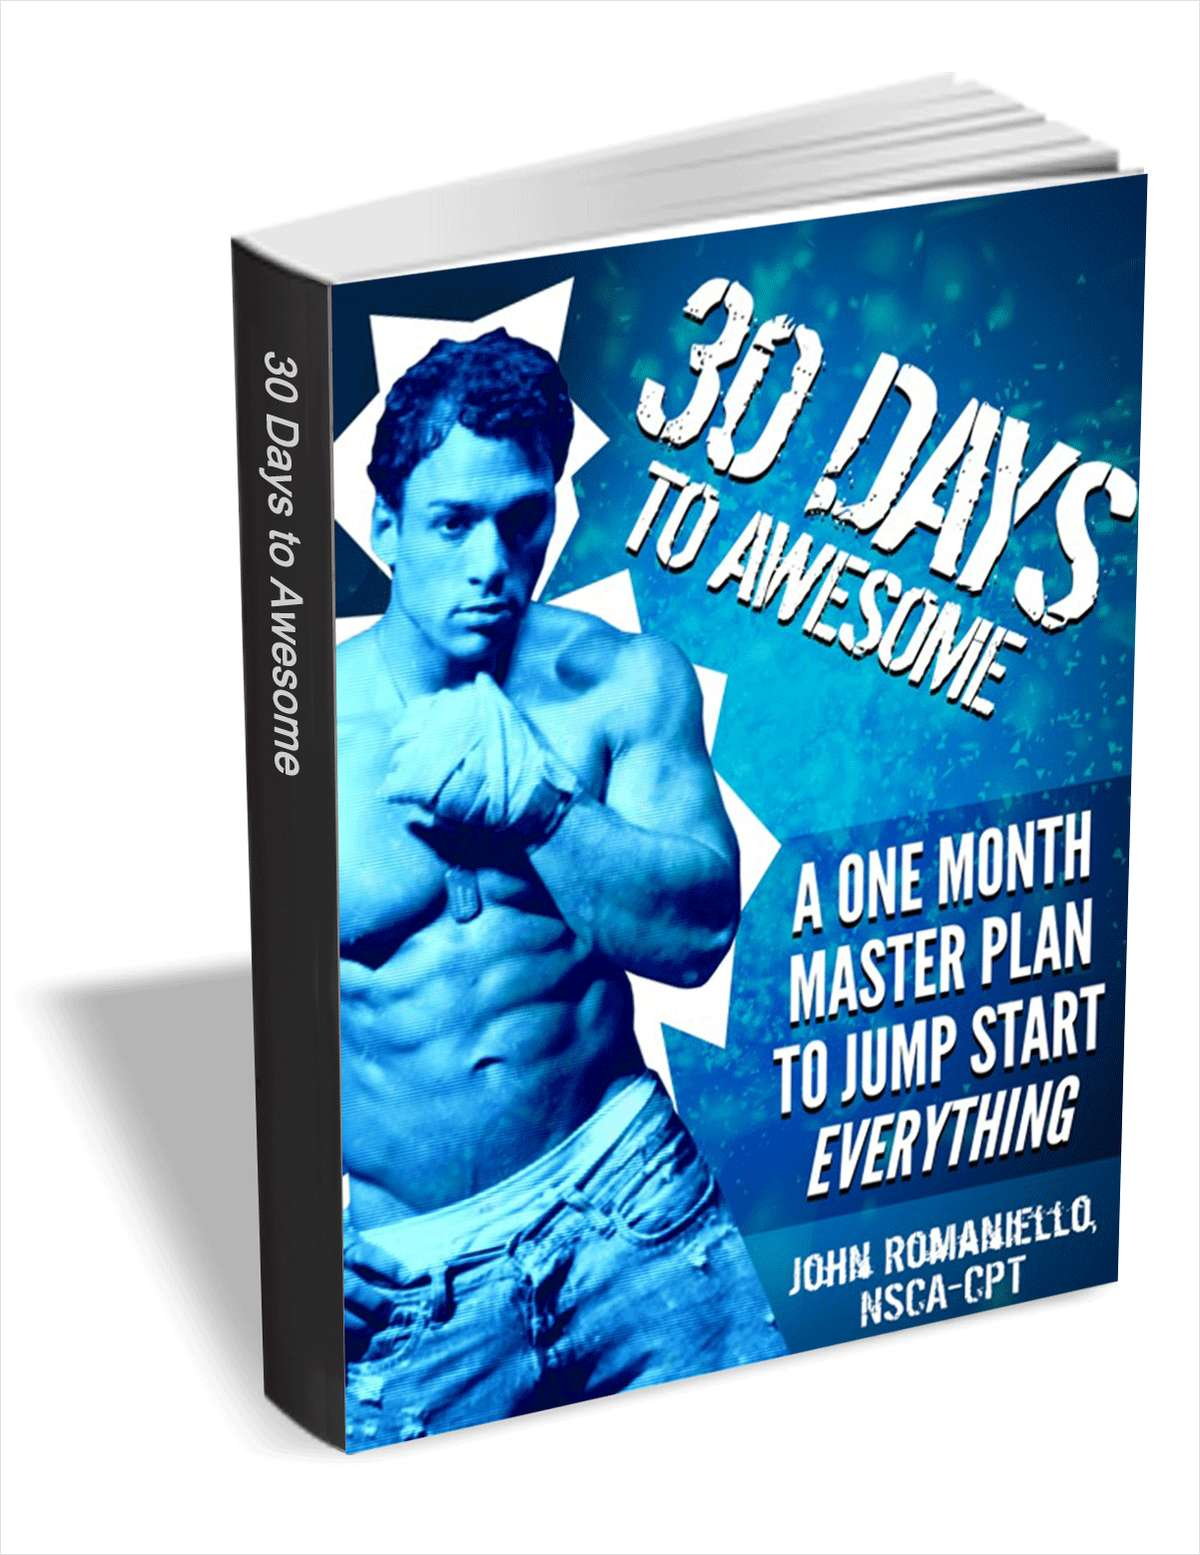 30 Days to Awesome - A One Month Master Plan to Jump Start Everything